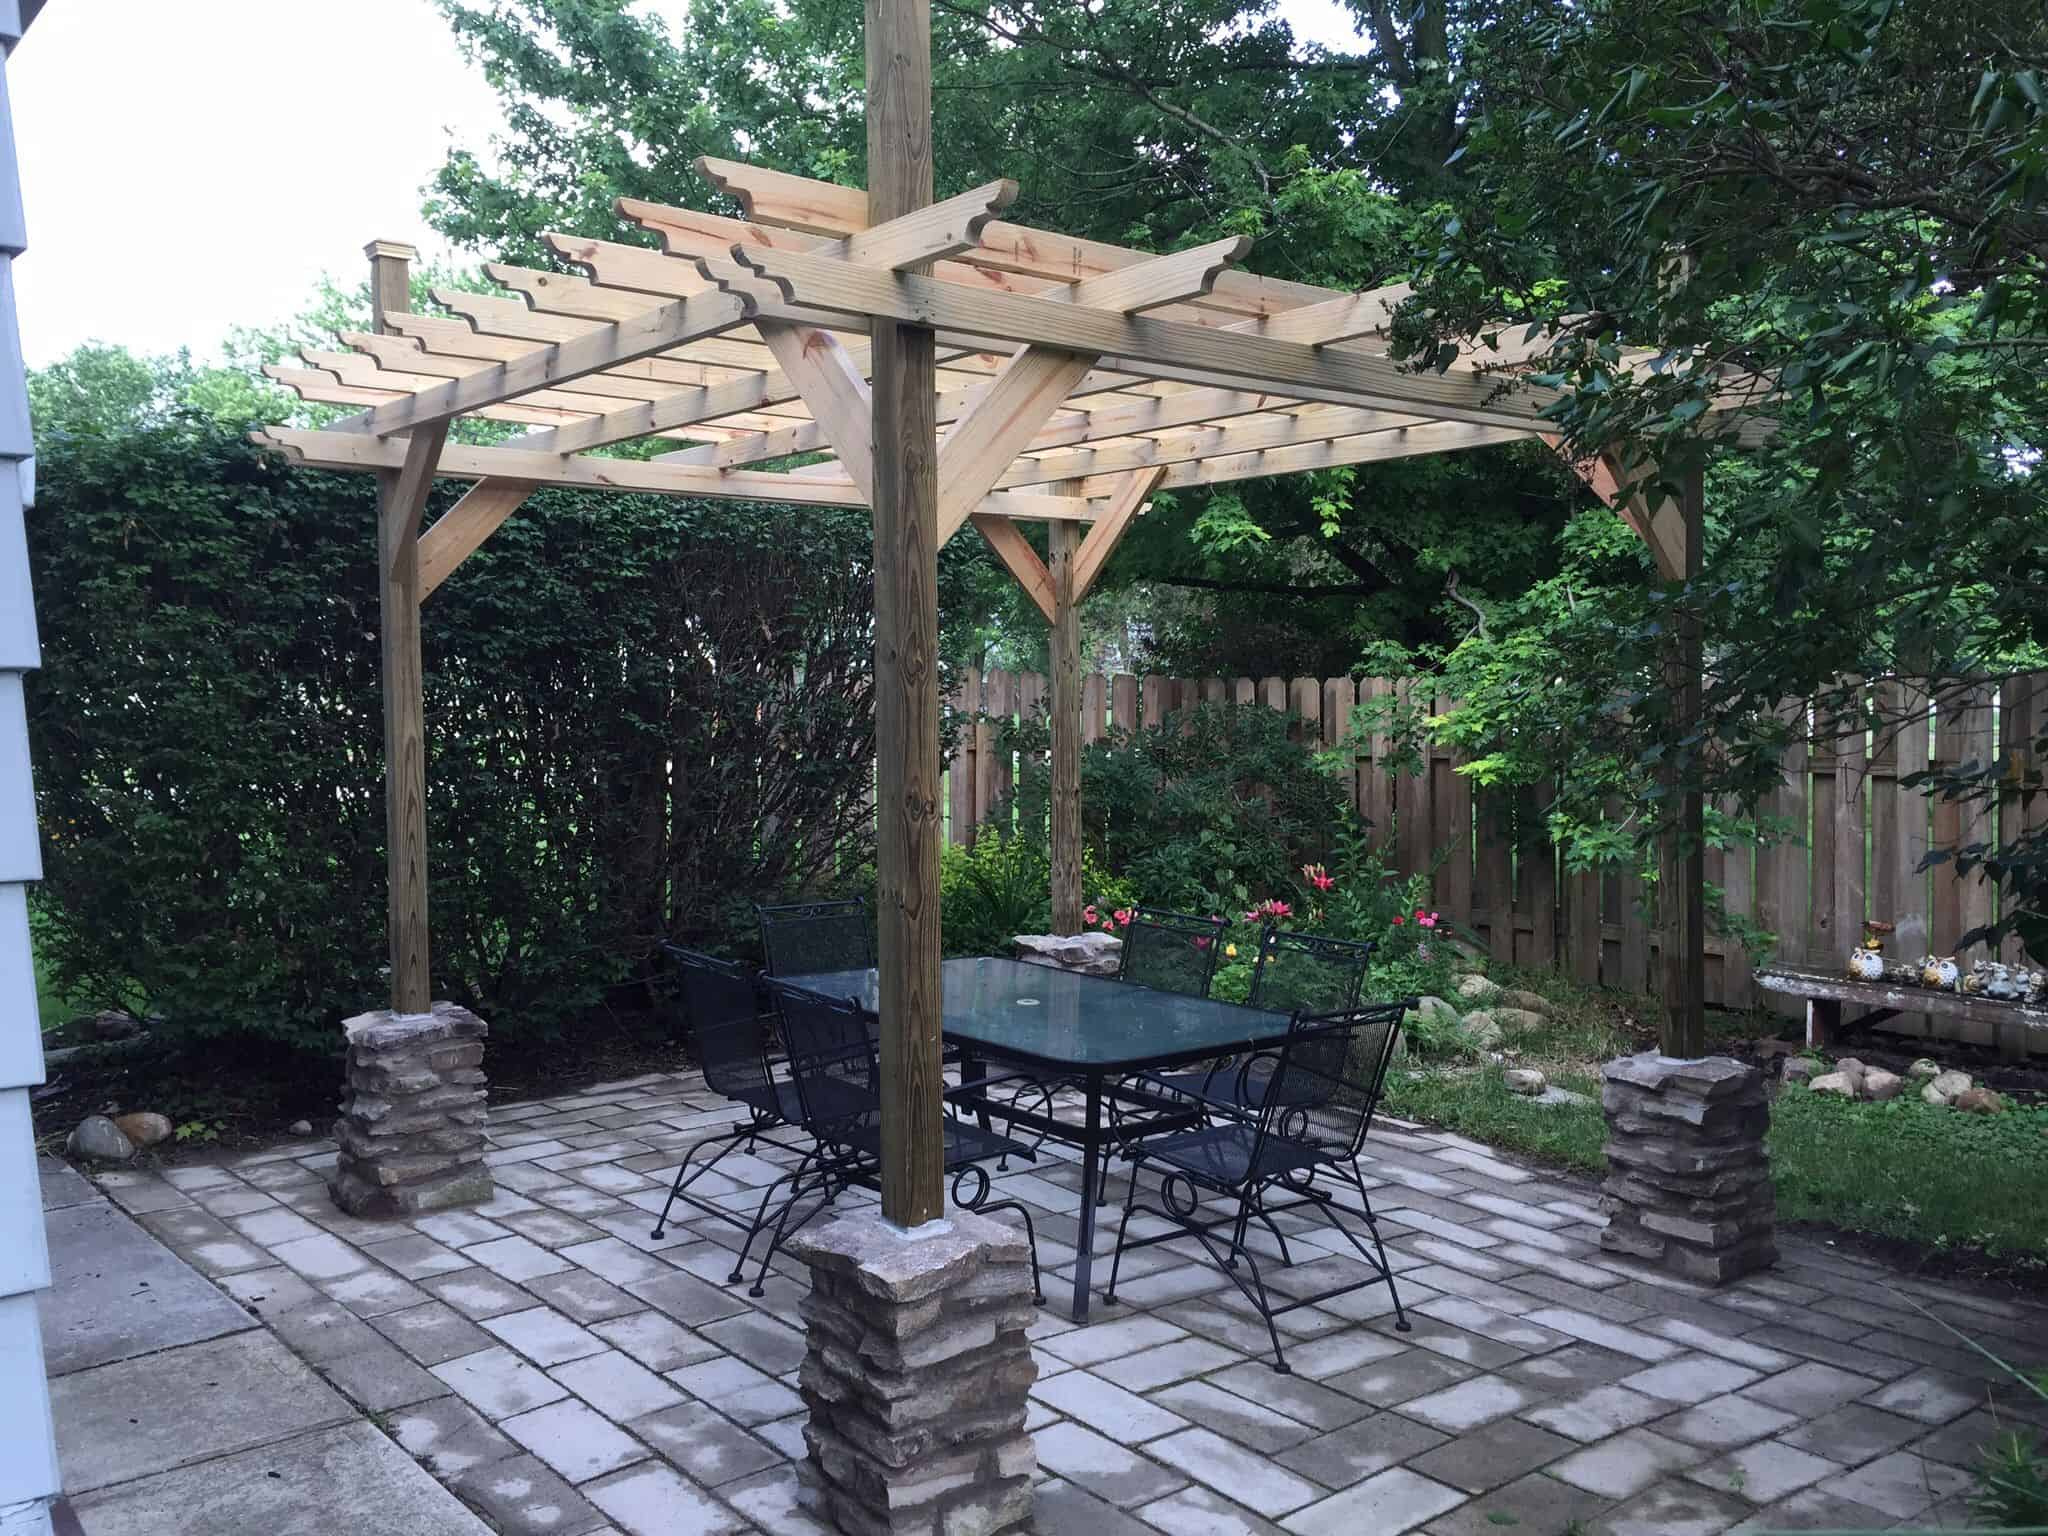 Pottery barn inspired diy pergola